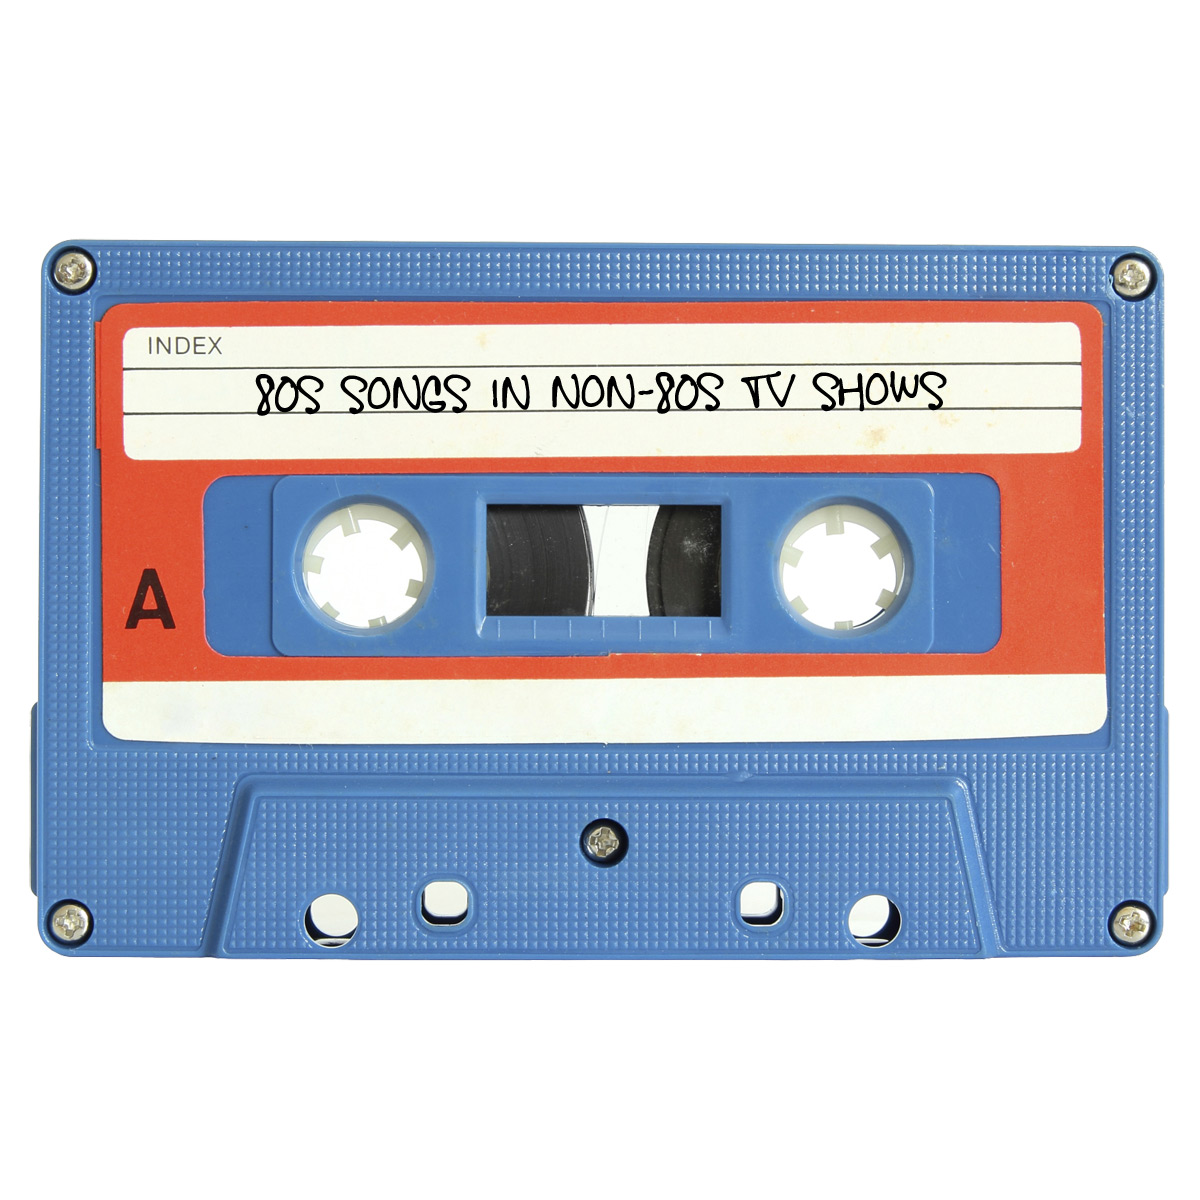 80s Songs In Non TV Shows